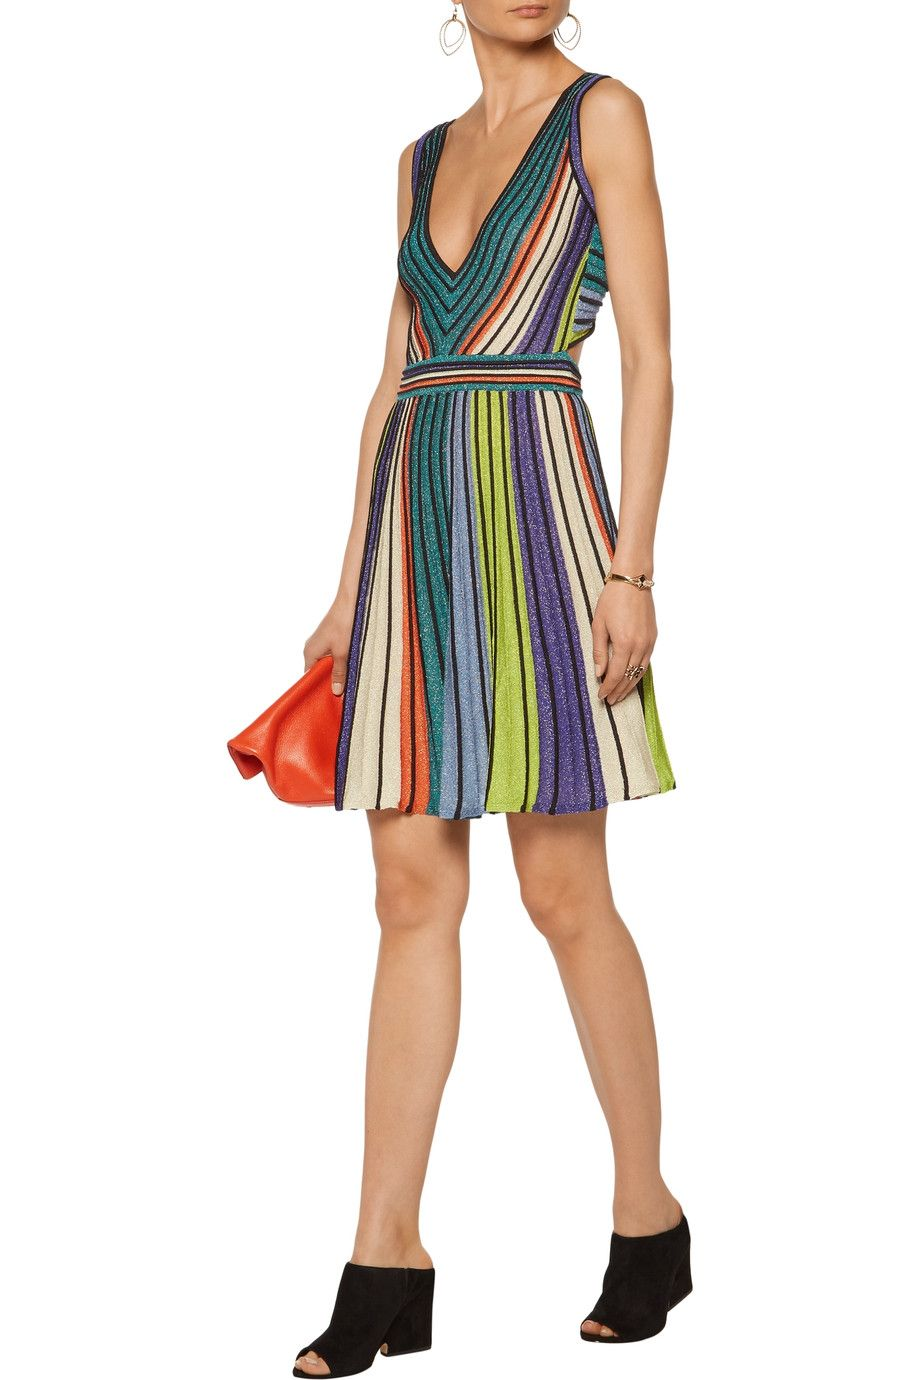 0d89b5f33a44f4 Shop on-sale M Missoni Cutout metallic striped stretch-knit mini dress.  Browse other discount designer Dresses & more on The Most Fashionable  Fashion Outlet ...